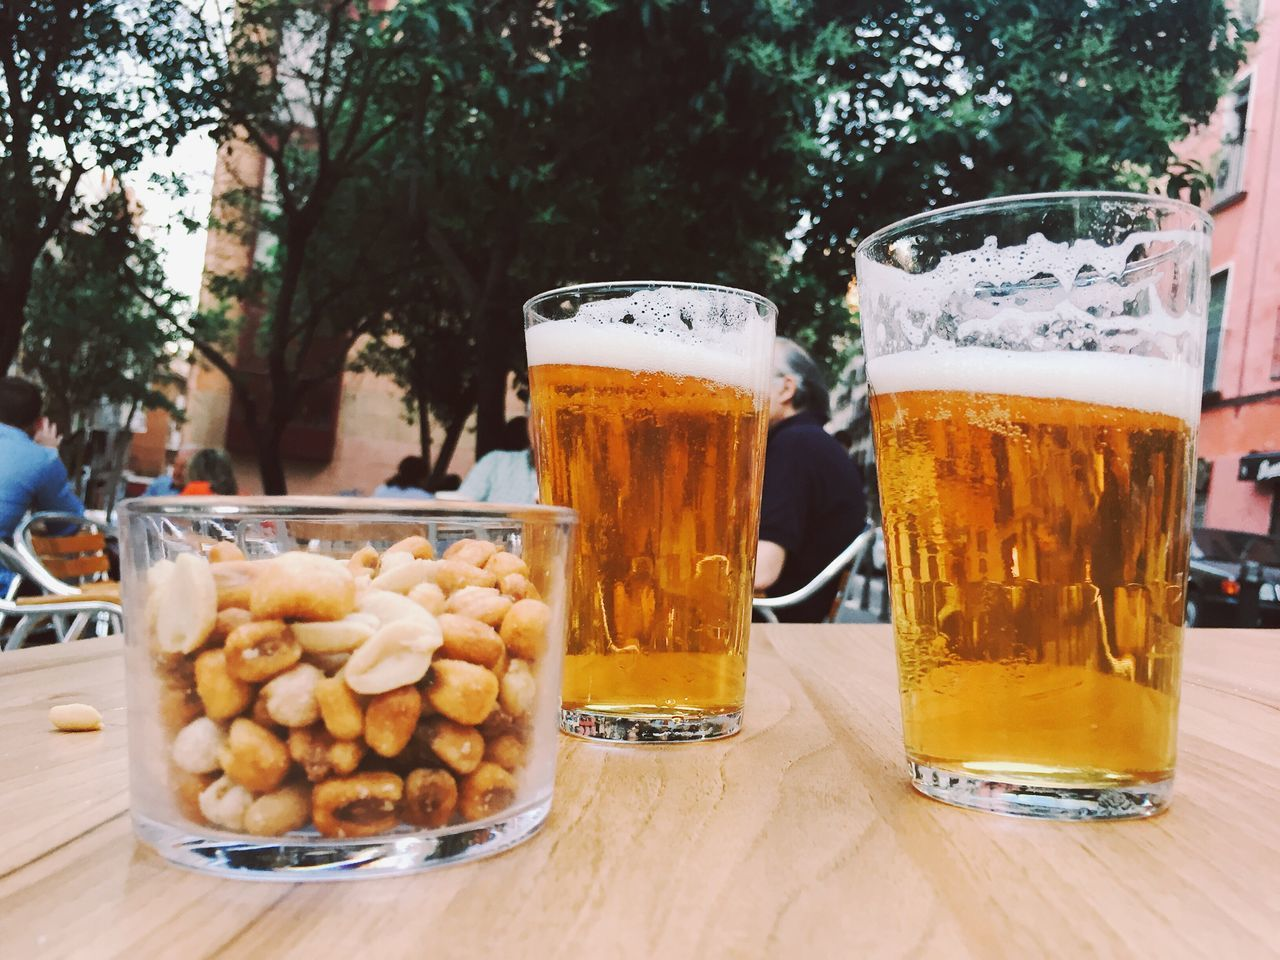 Beer Glass Food And Drink Beer - Alcohol Drink Table Refreshment Alcohol Frothy Drink Tree Drinking Glass Freshness Outdoors Beer Day Food No People Healthy Eating Close-up